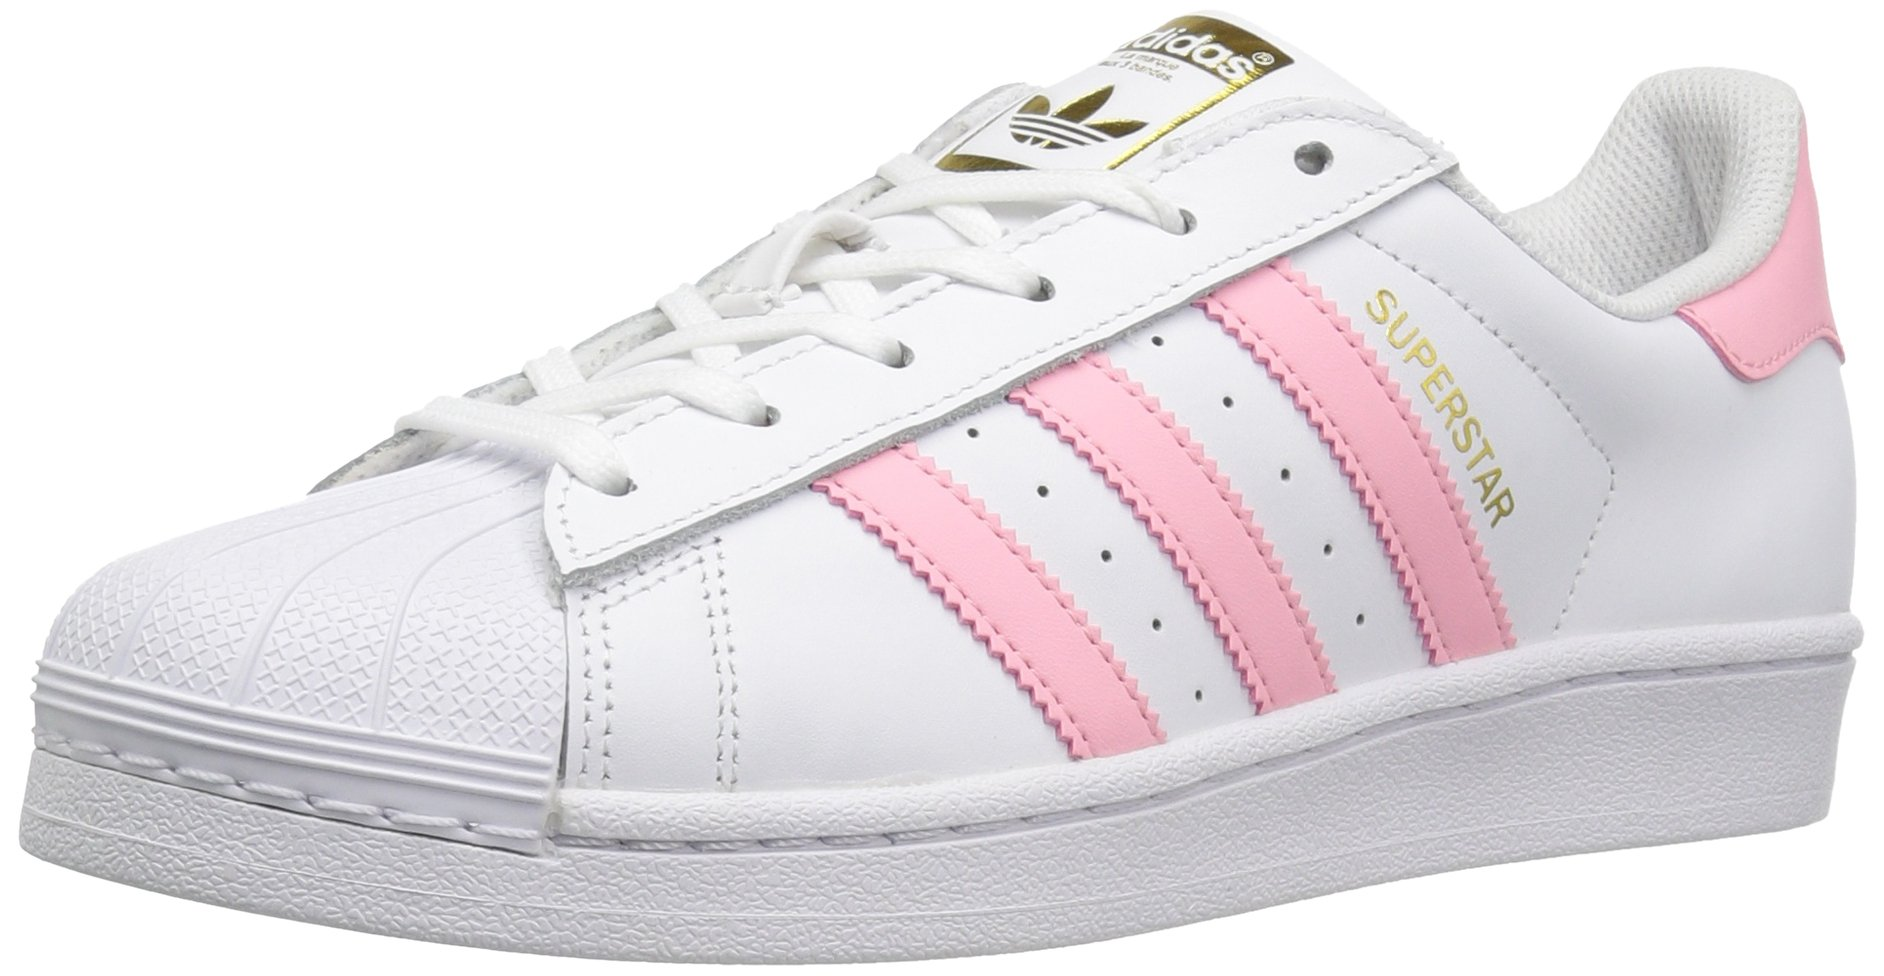 Cheap Adidas Originals Superstar Boys' Grade School Basketball Shoes